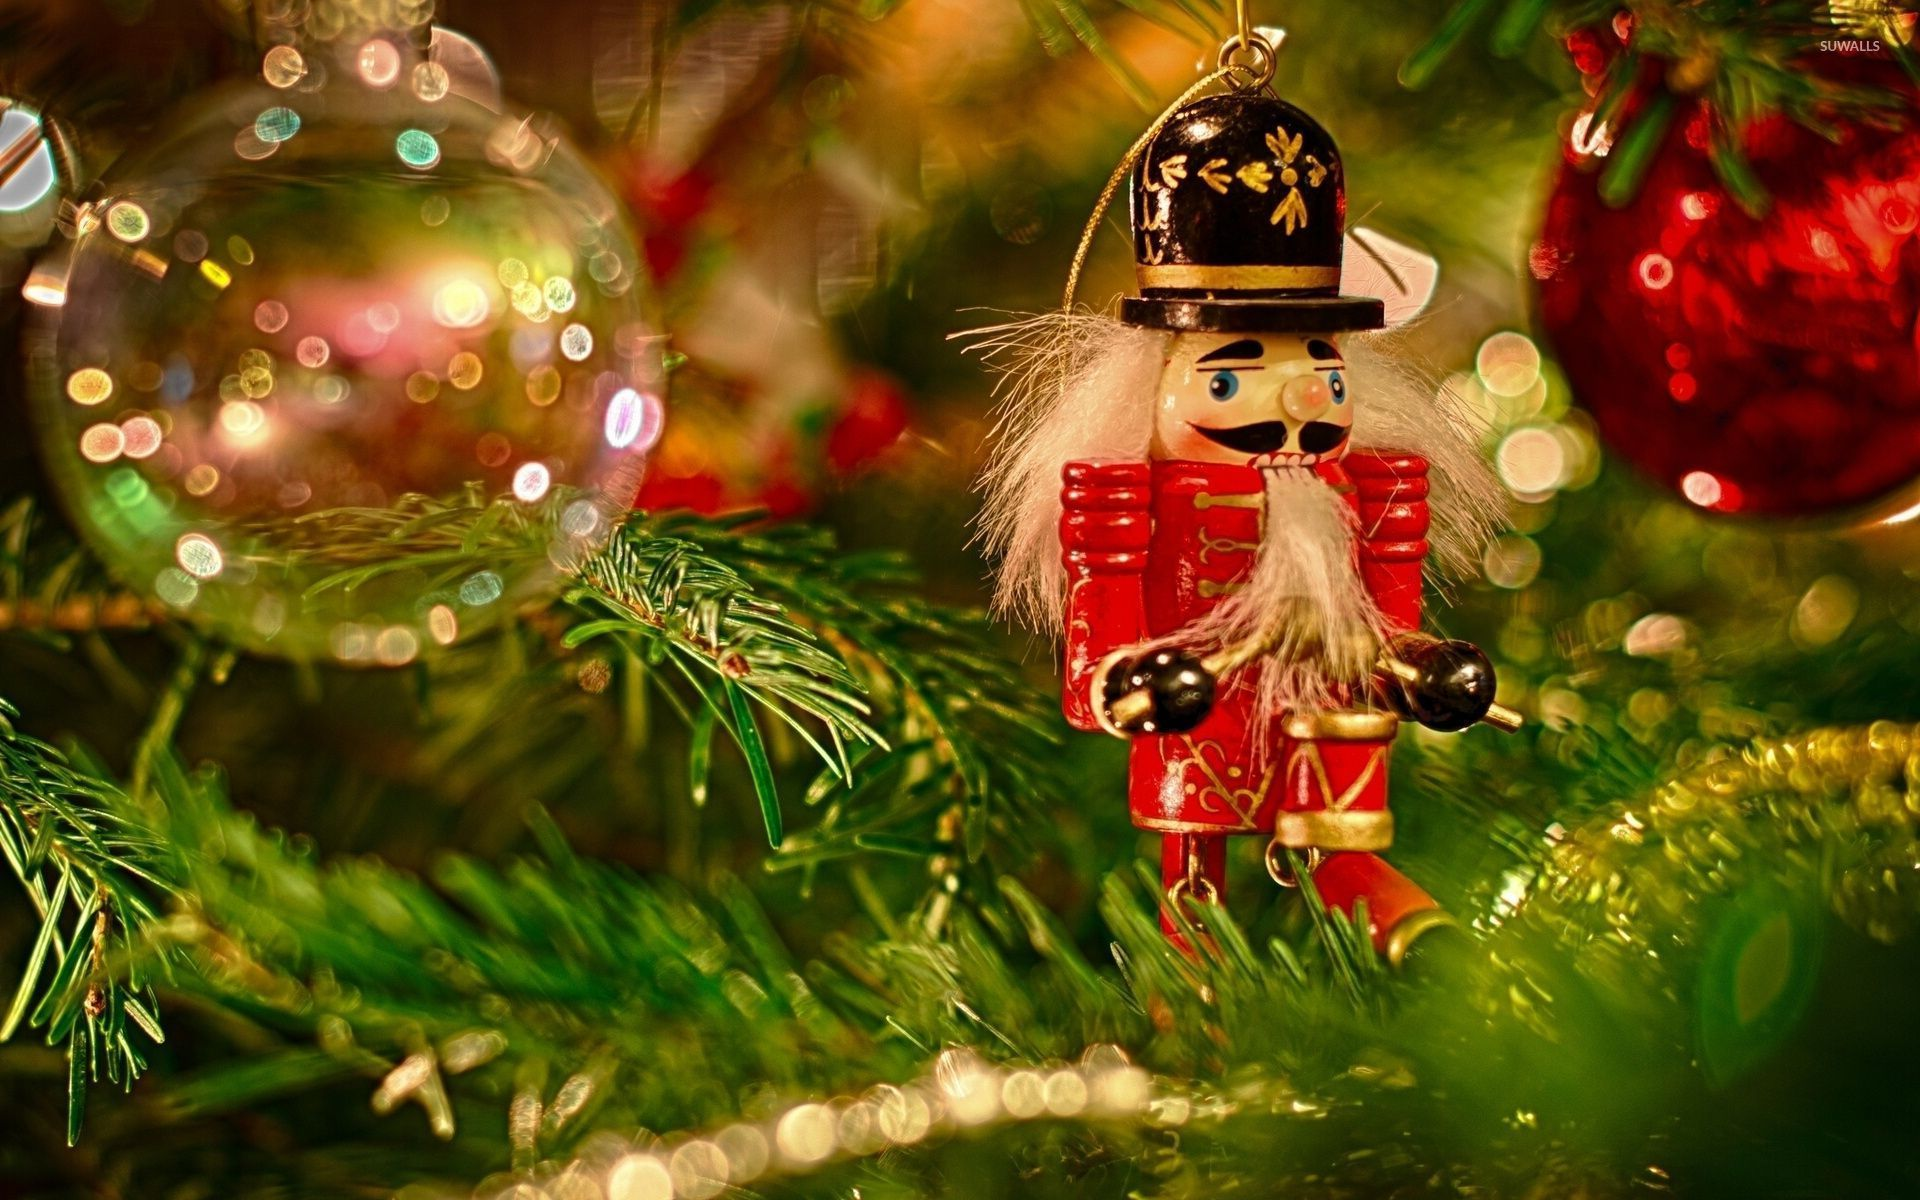 Wooden Soldier In The Christmas Tree Wallpaper Holiday